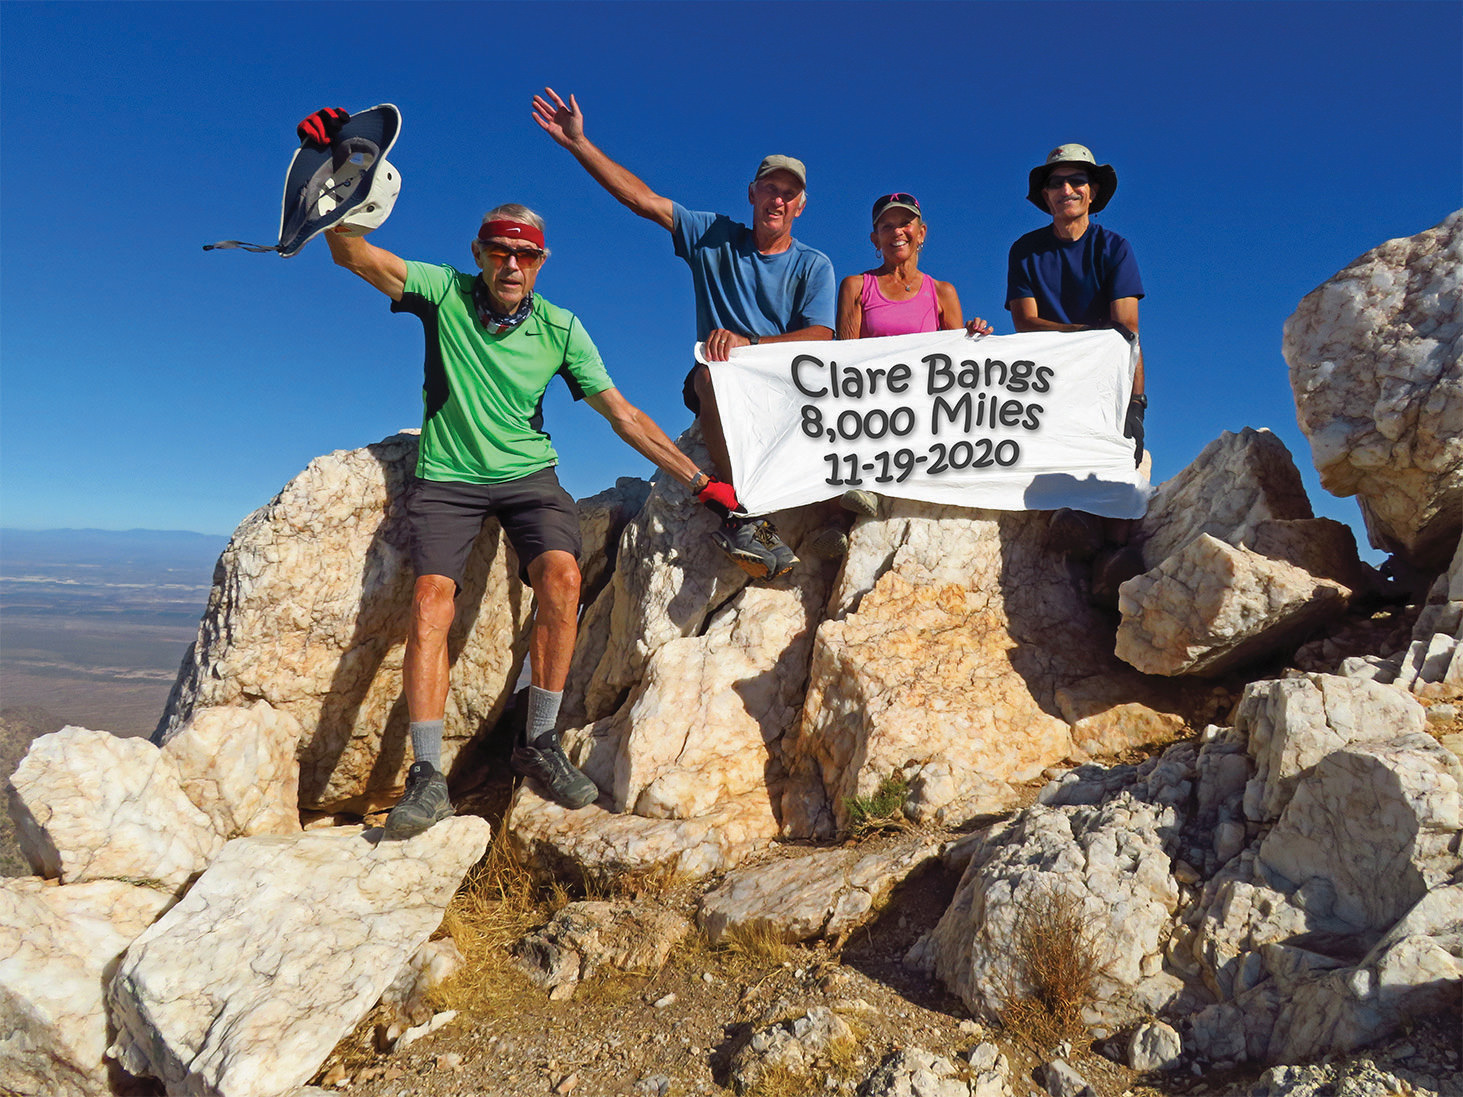 Left to right: Lynn Warren (photographer), Clare Bangs, Marilyn Reynolds, and Mike Tansey celebrating Clare's achievement on Quartz Peak, where the drive to get there is as challenging as the climb.